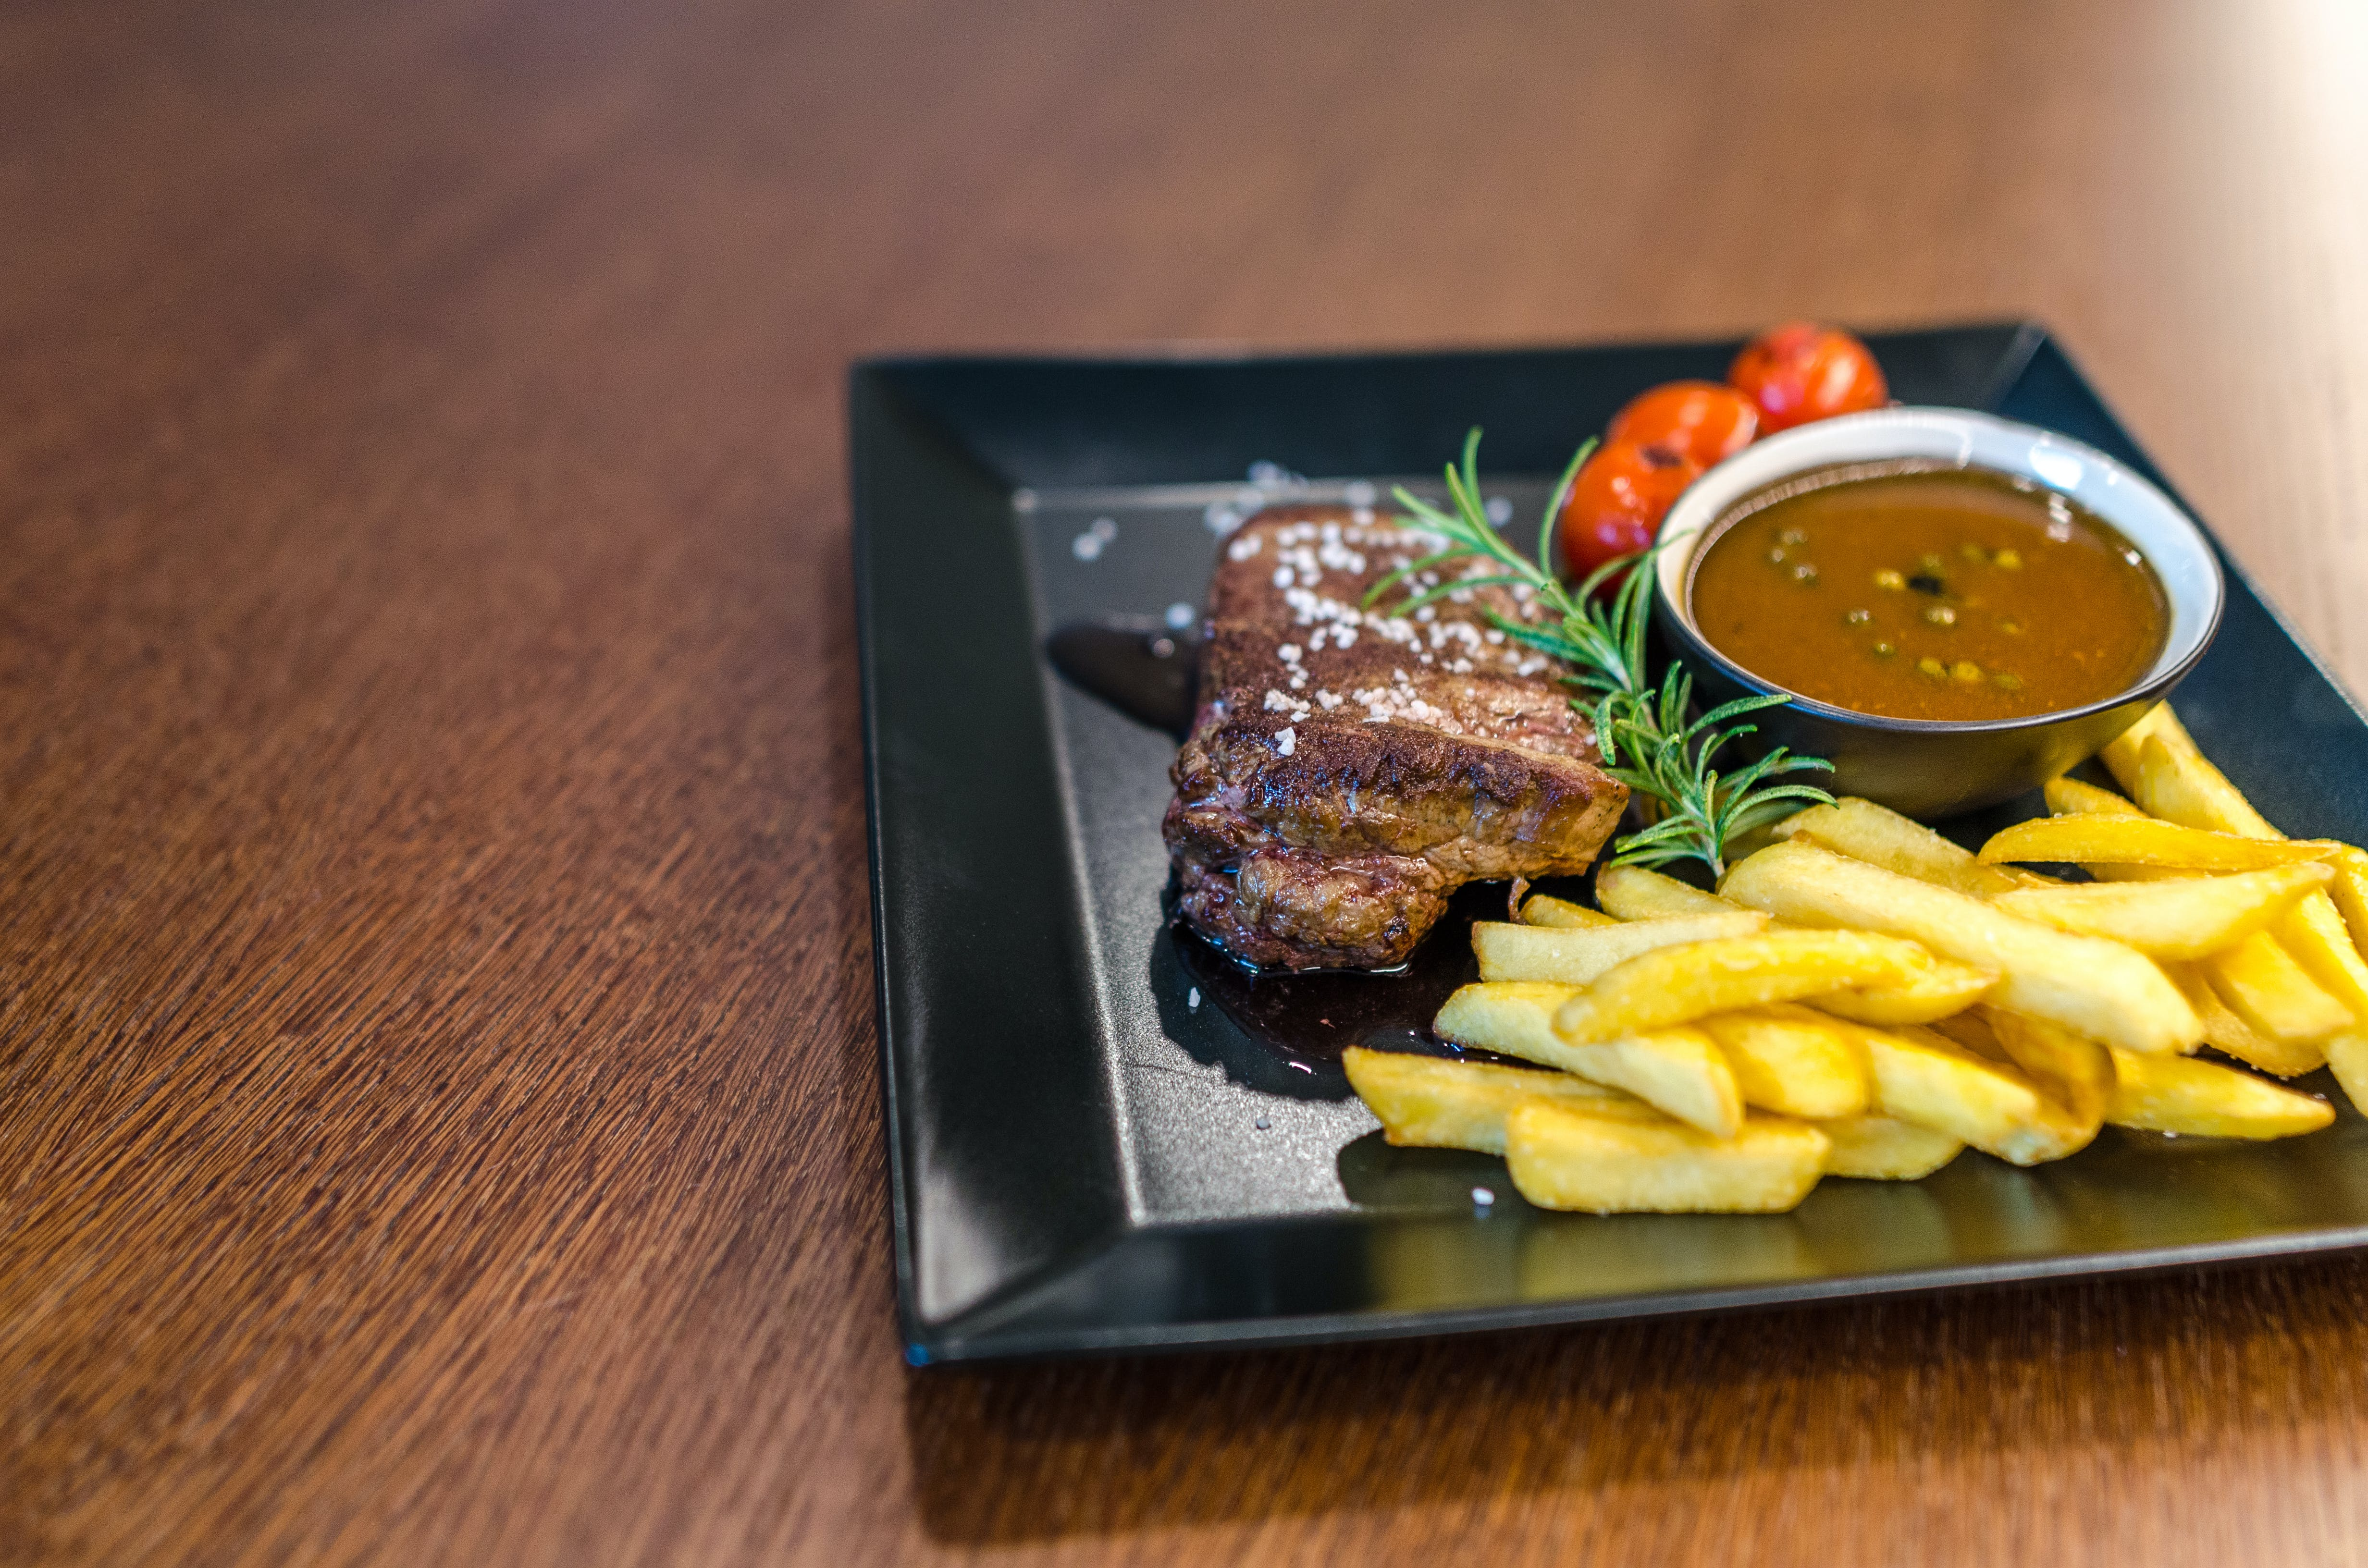 Grilled Beef With Fries and Sauce on Black Ceramic Plate